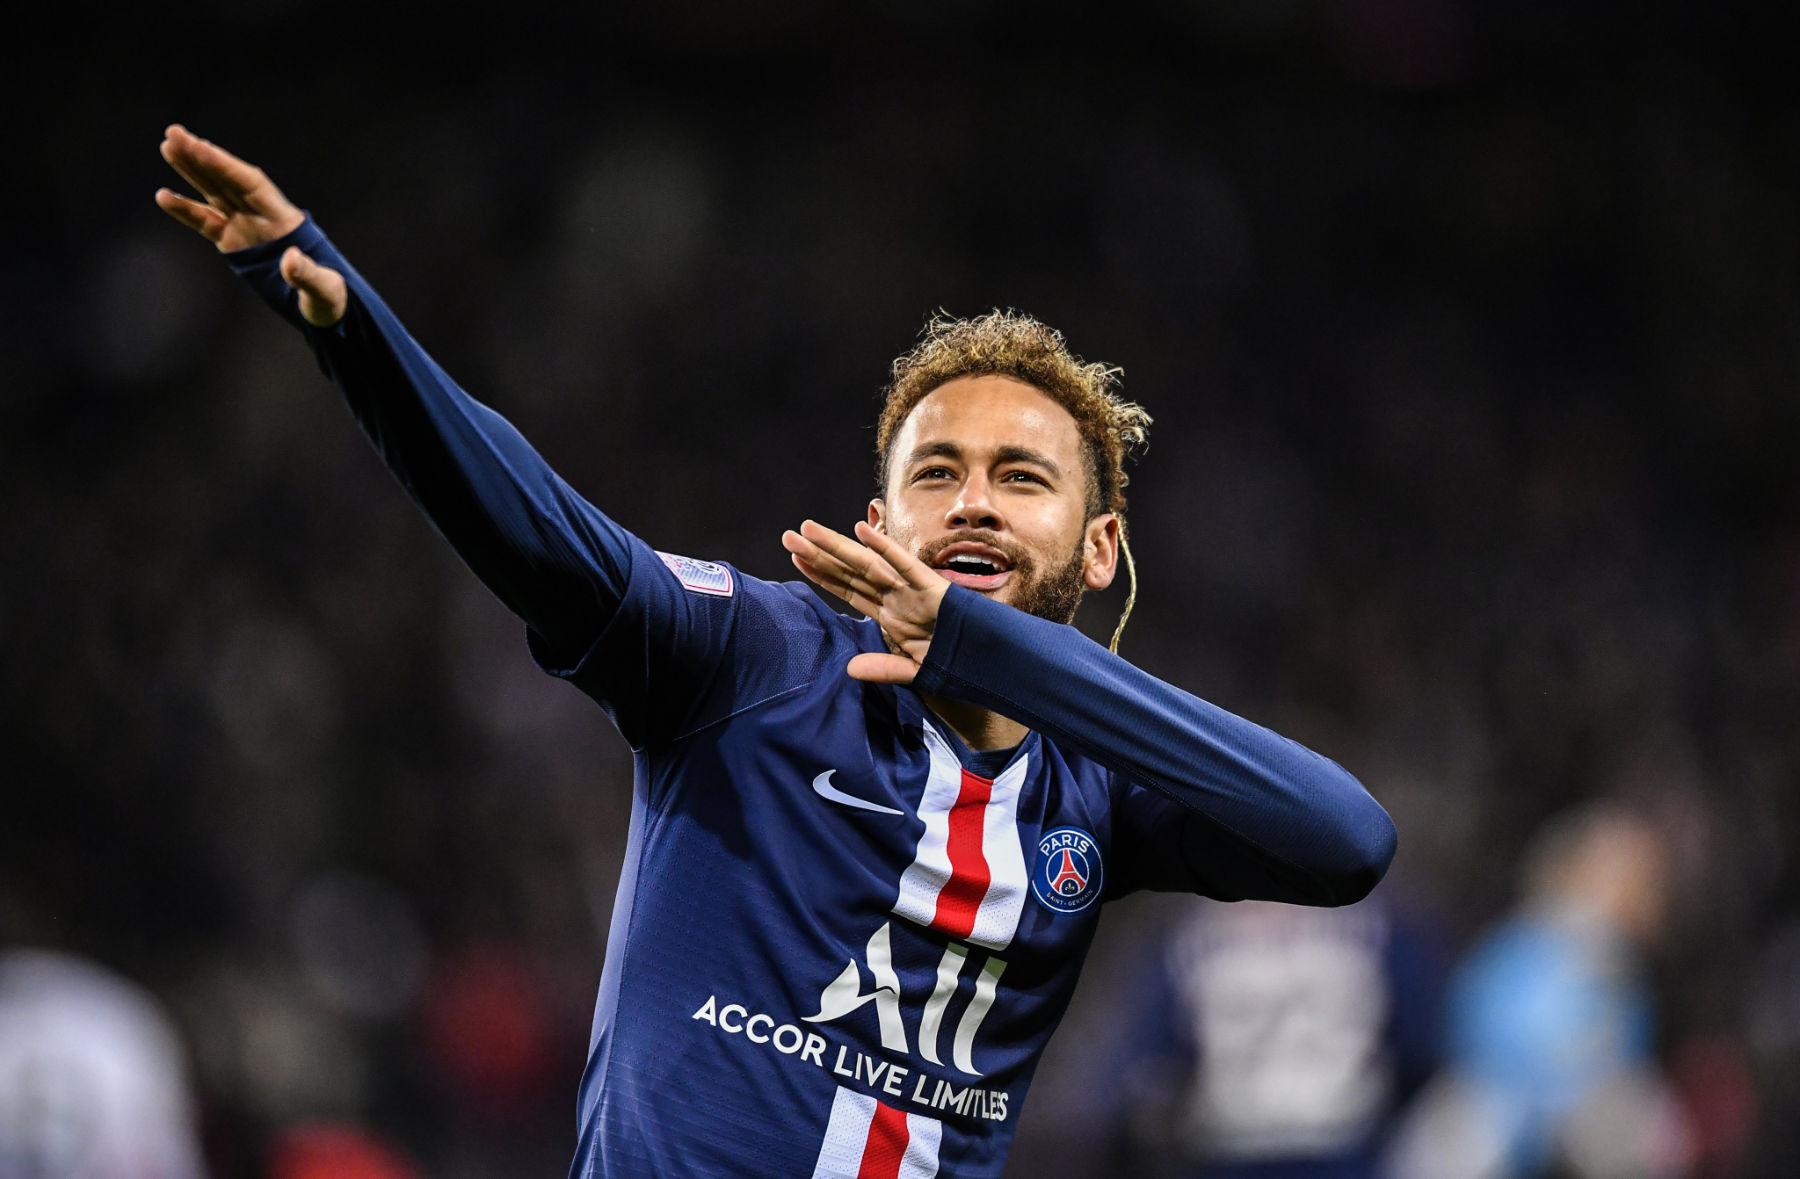 Video: Neymar Embraces PSG Supporters to Close Out 2019 - PSG Talk